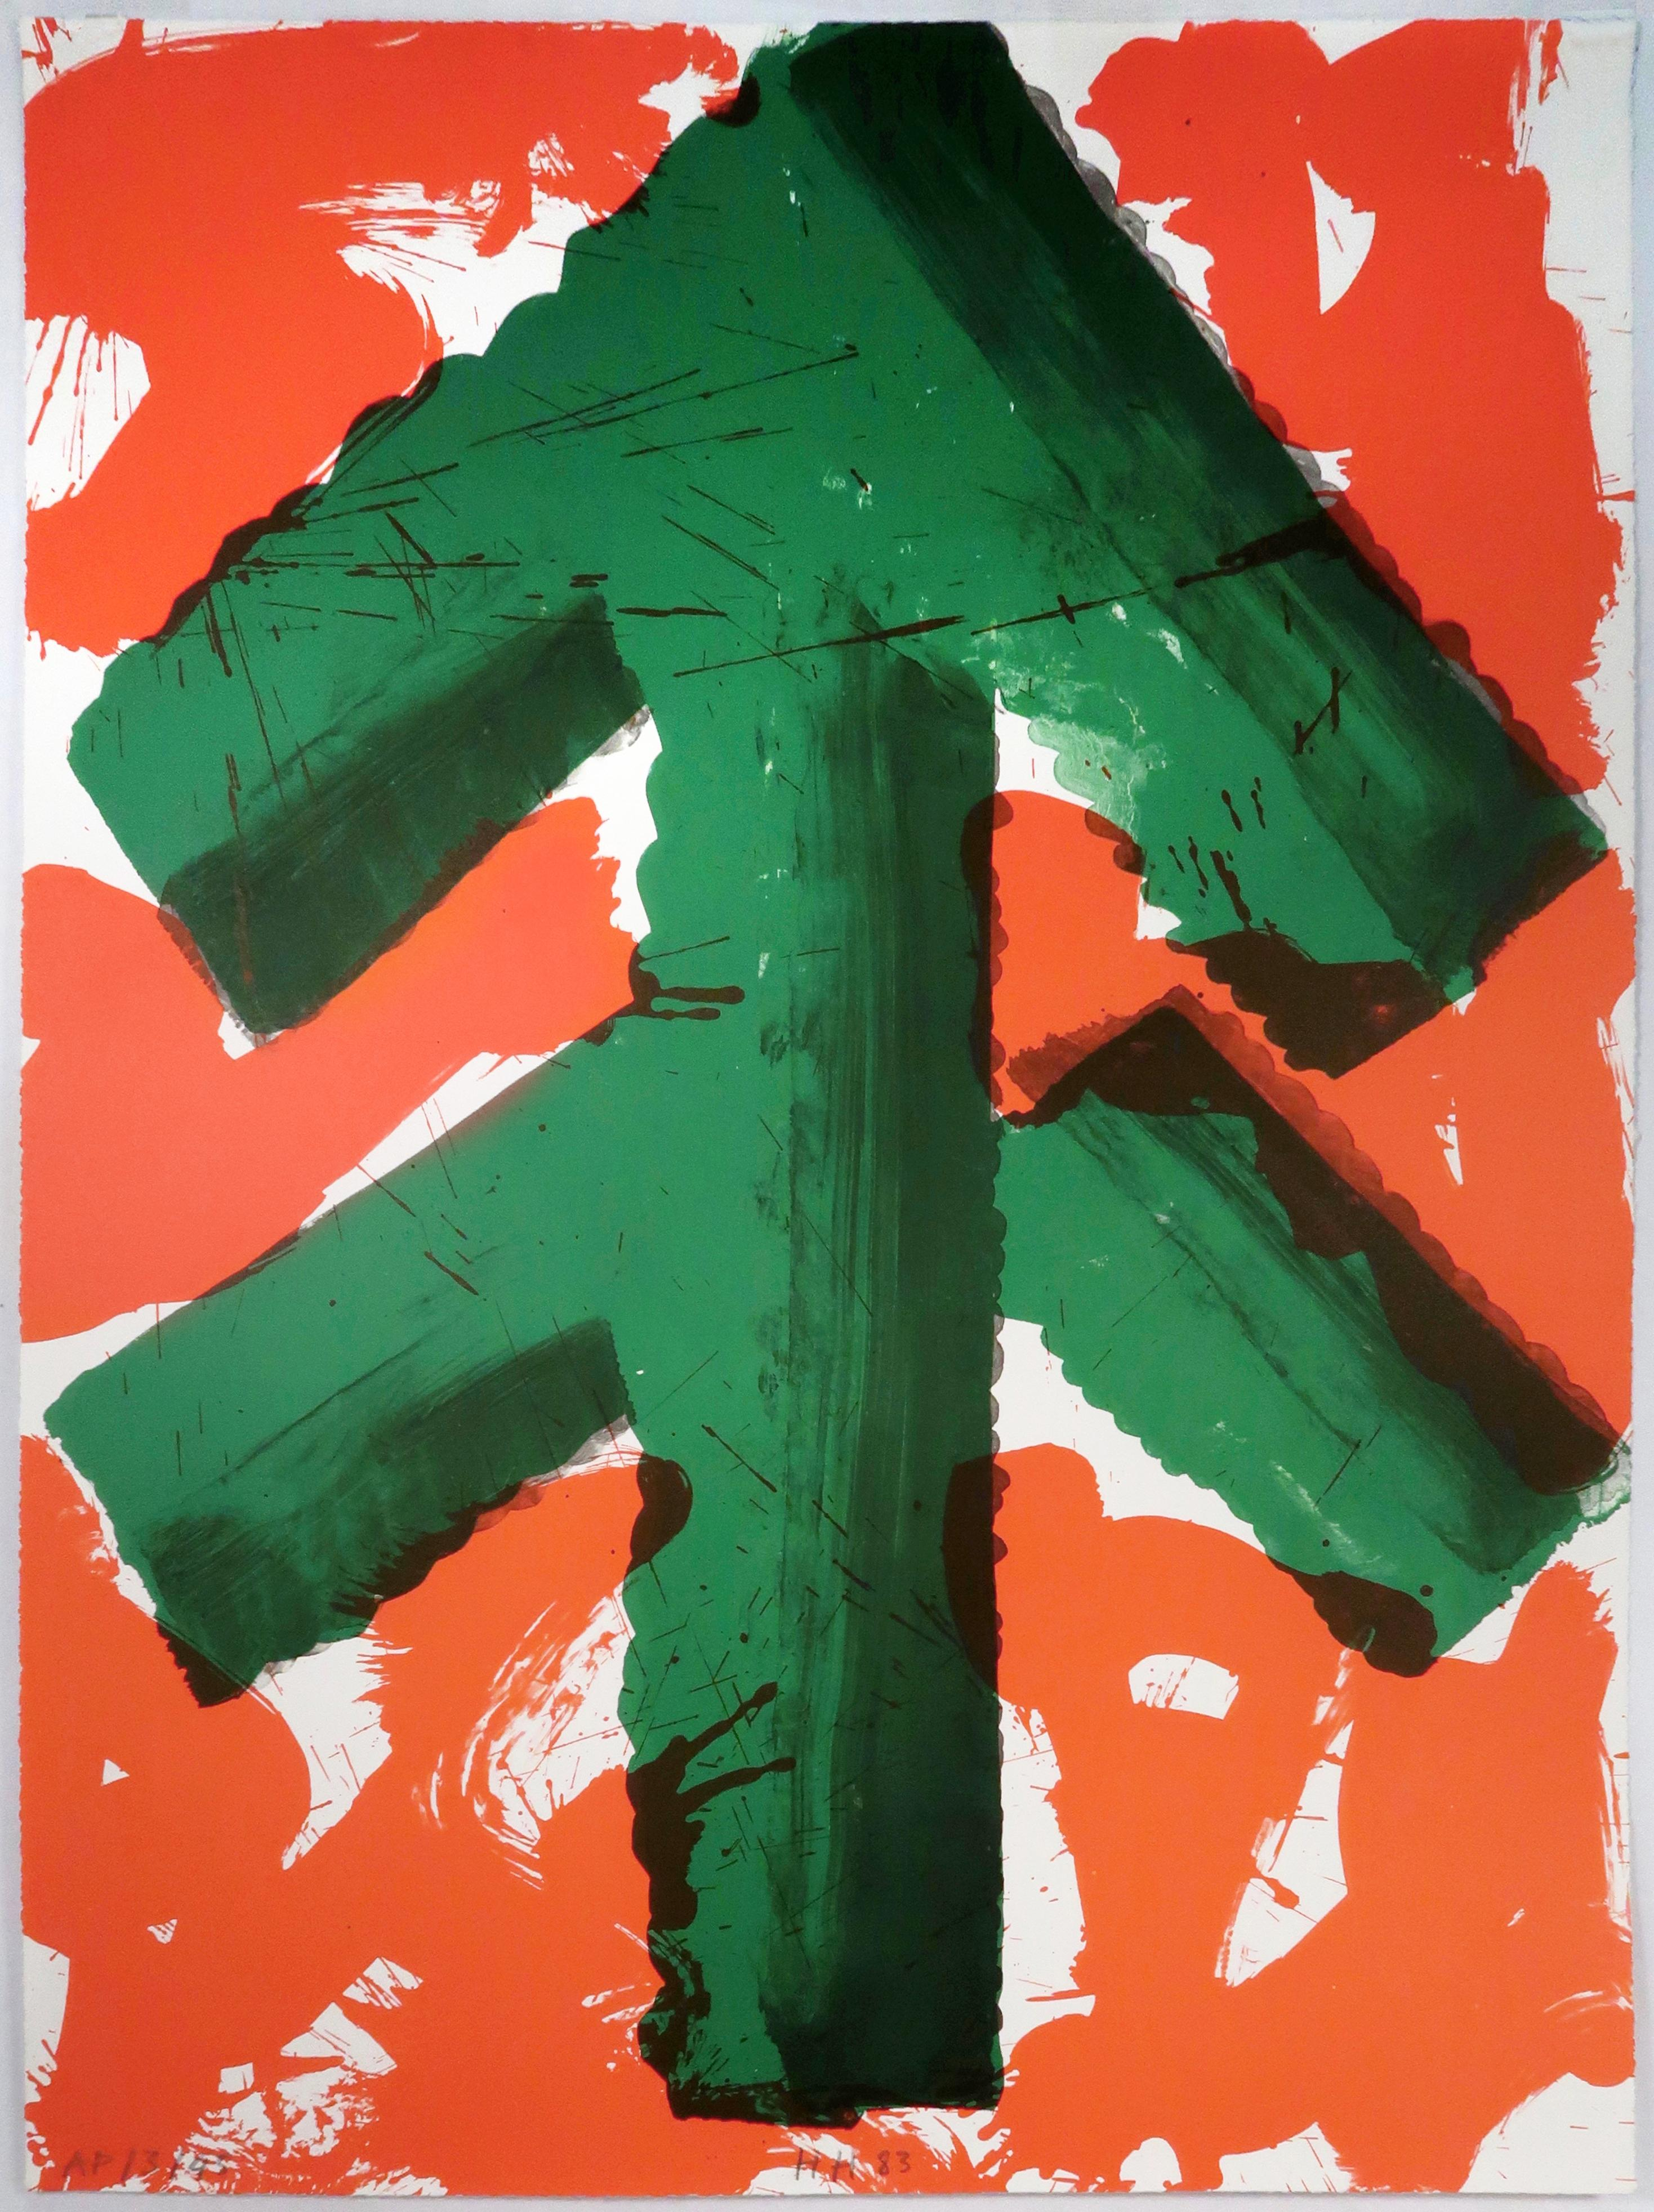 Welcome (Commissioned by Andy Warhol for Winter Olympics 1984, Sarajevo) Hodgkin